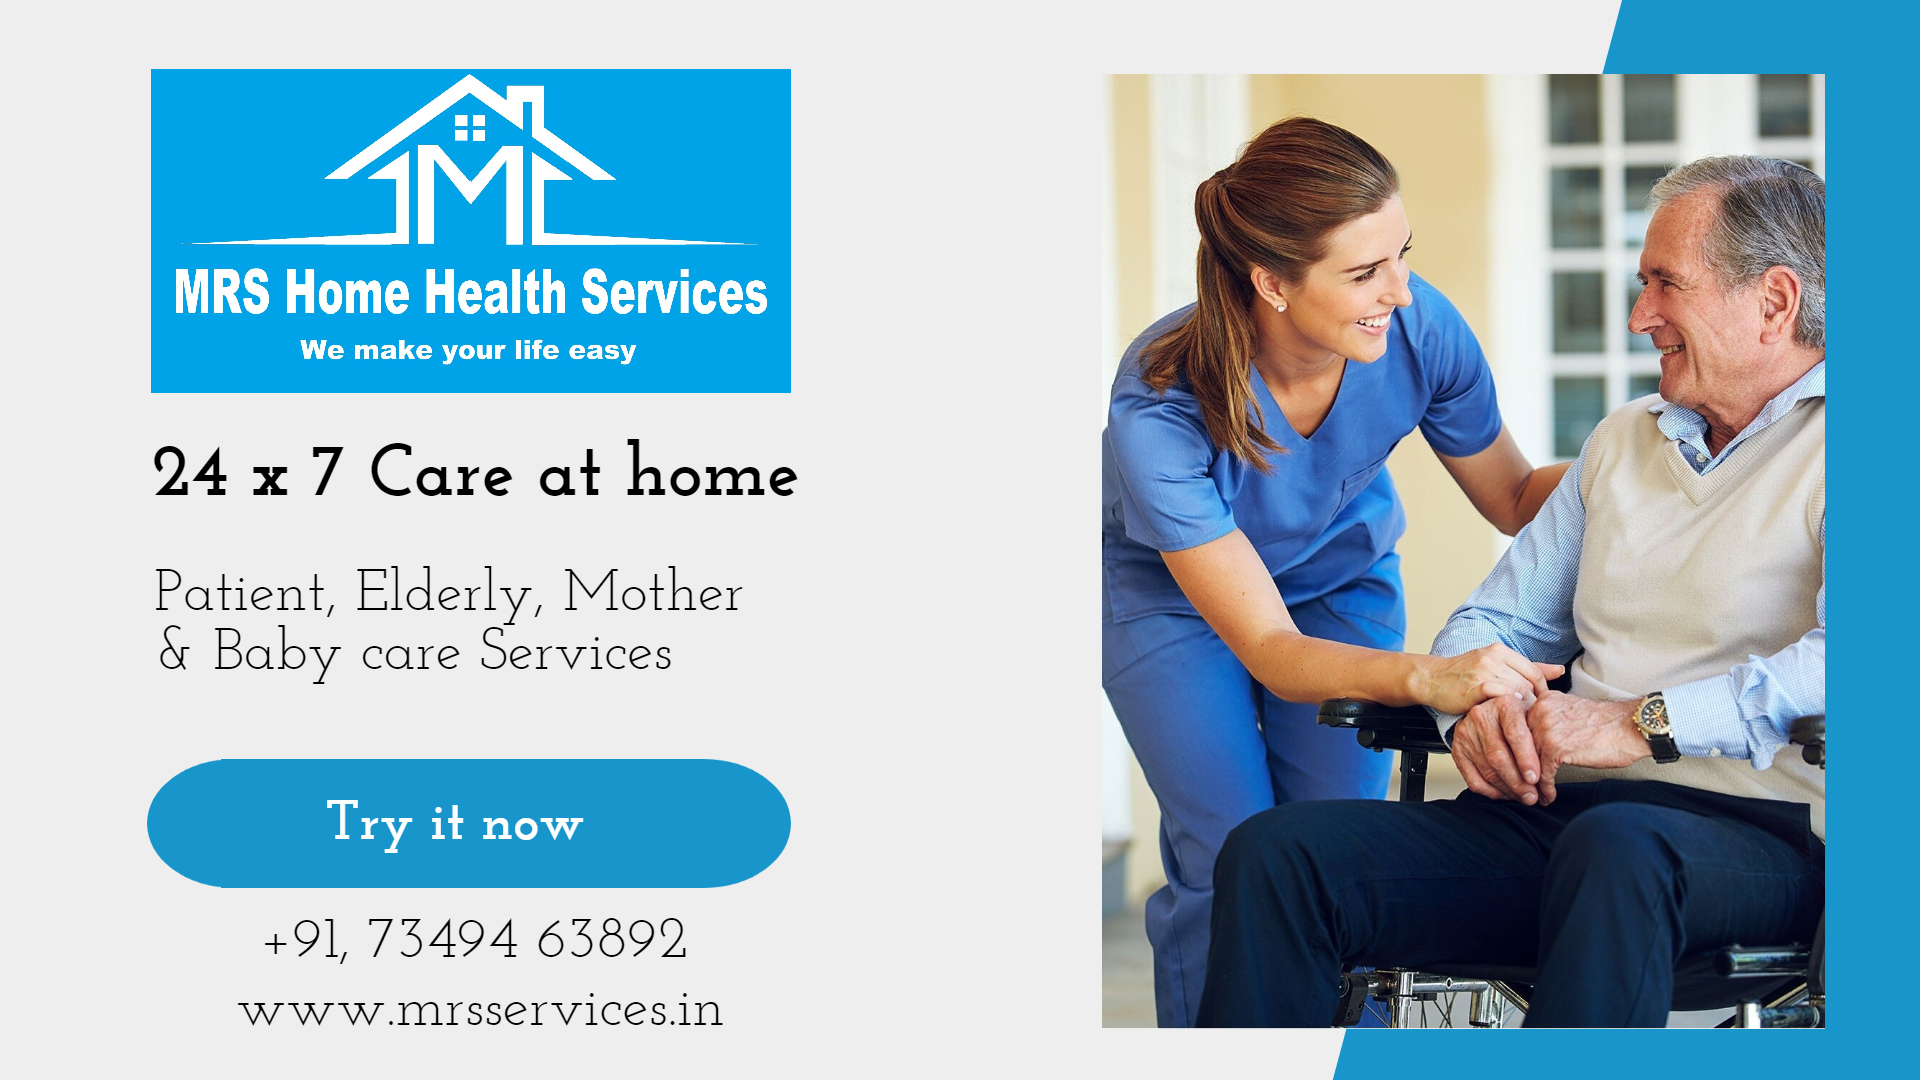 MRS Home Health Services